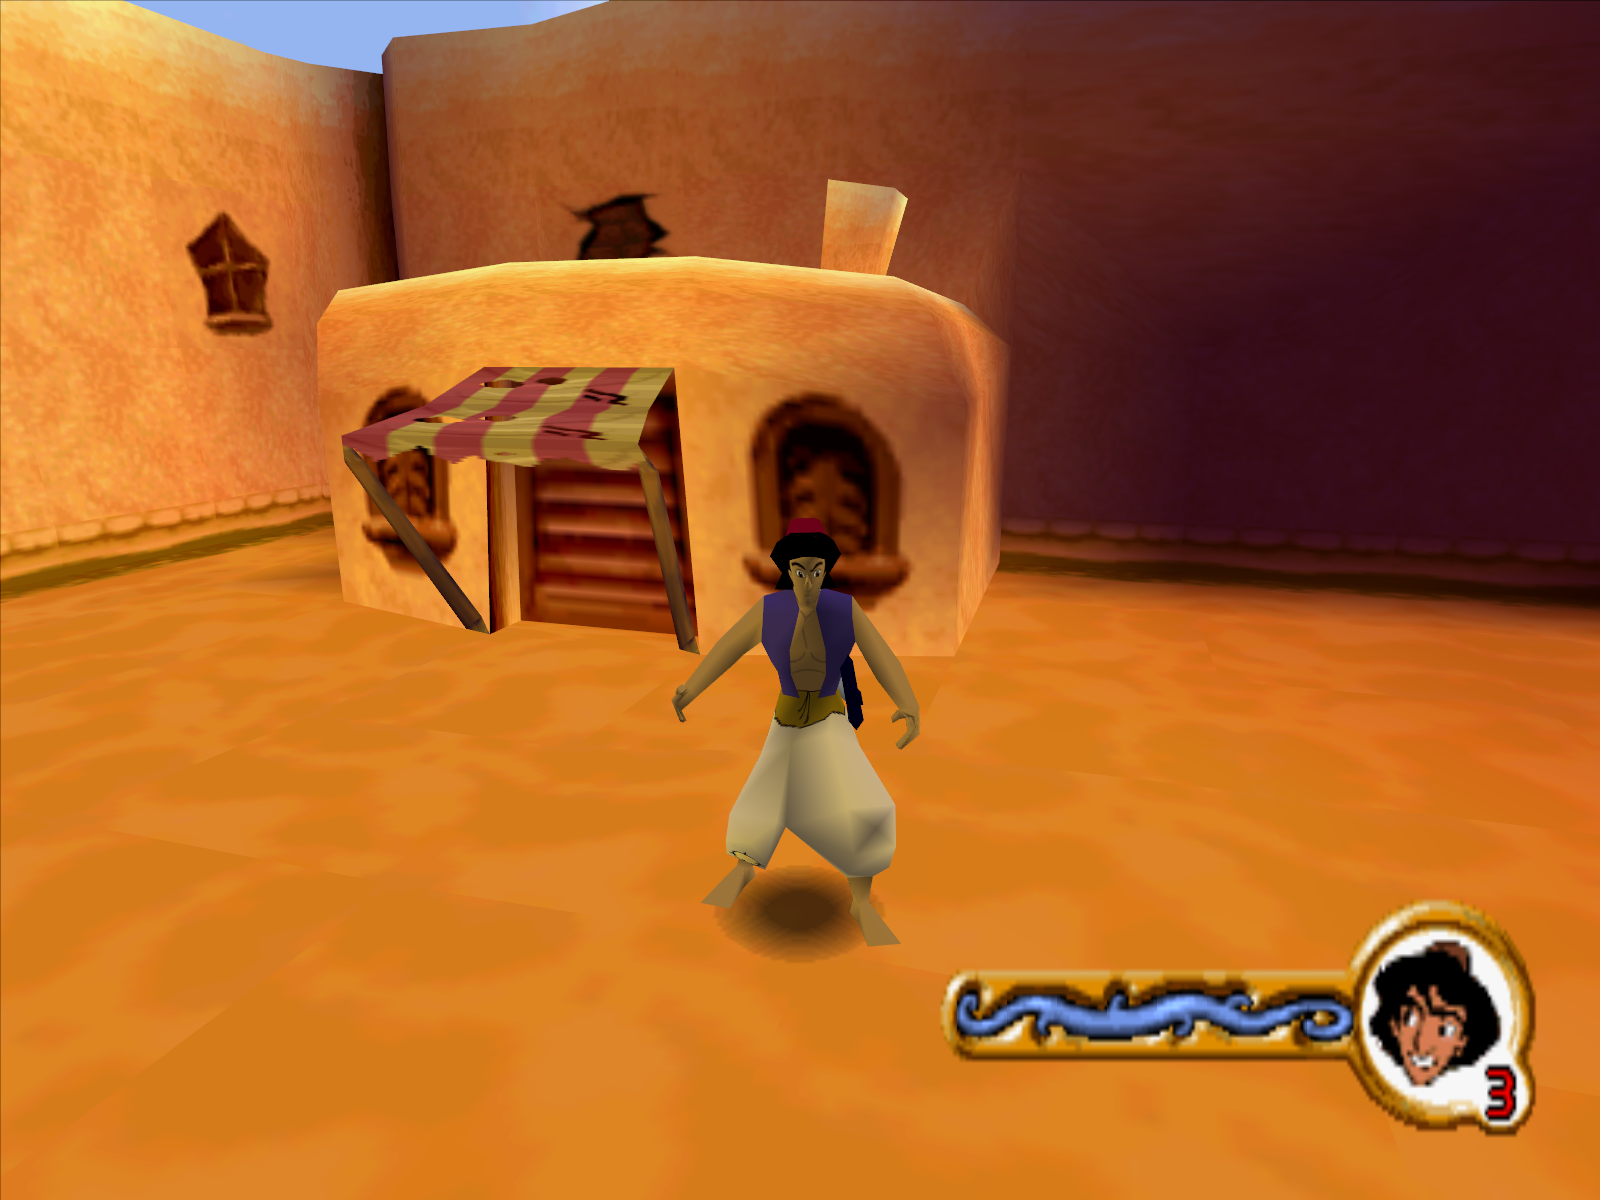 Disney's Aladdin in Nasira's Revenge Windows Aladdin!